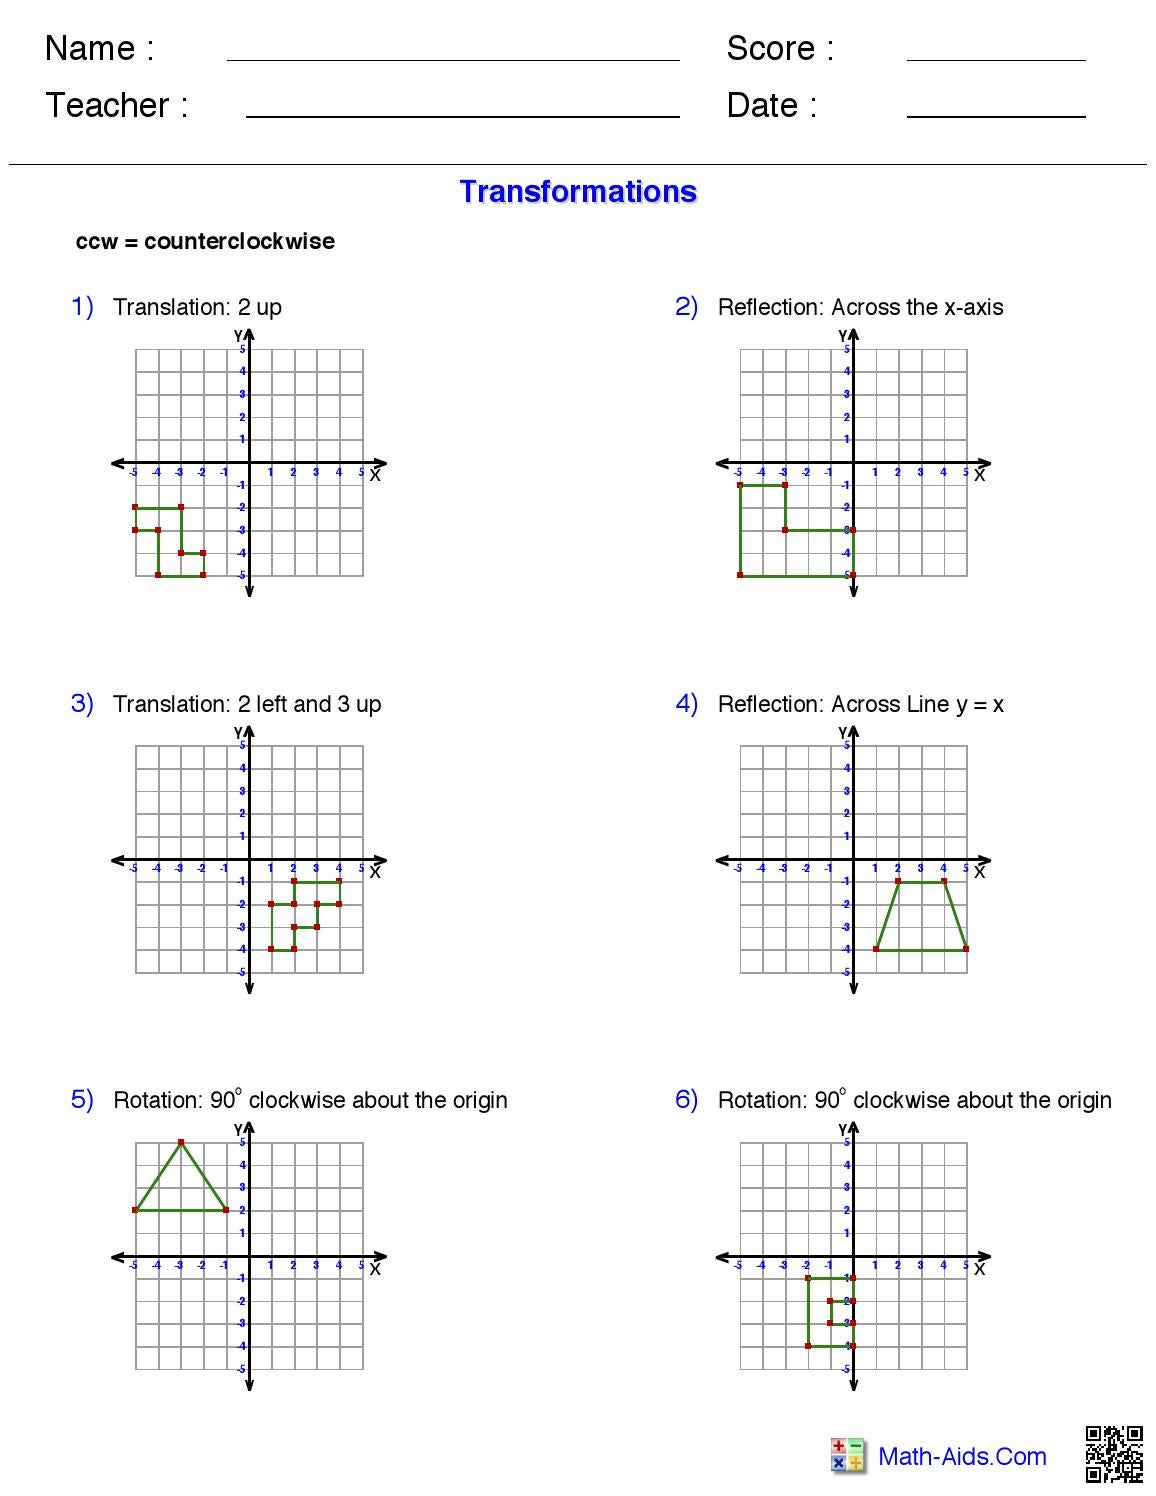 transformations work sheet from math by morgan aue issuu. Black Bedroom Furniture Sets. Home Design Ideas